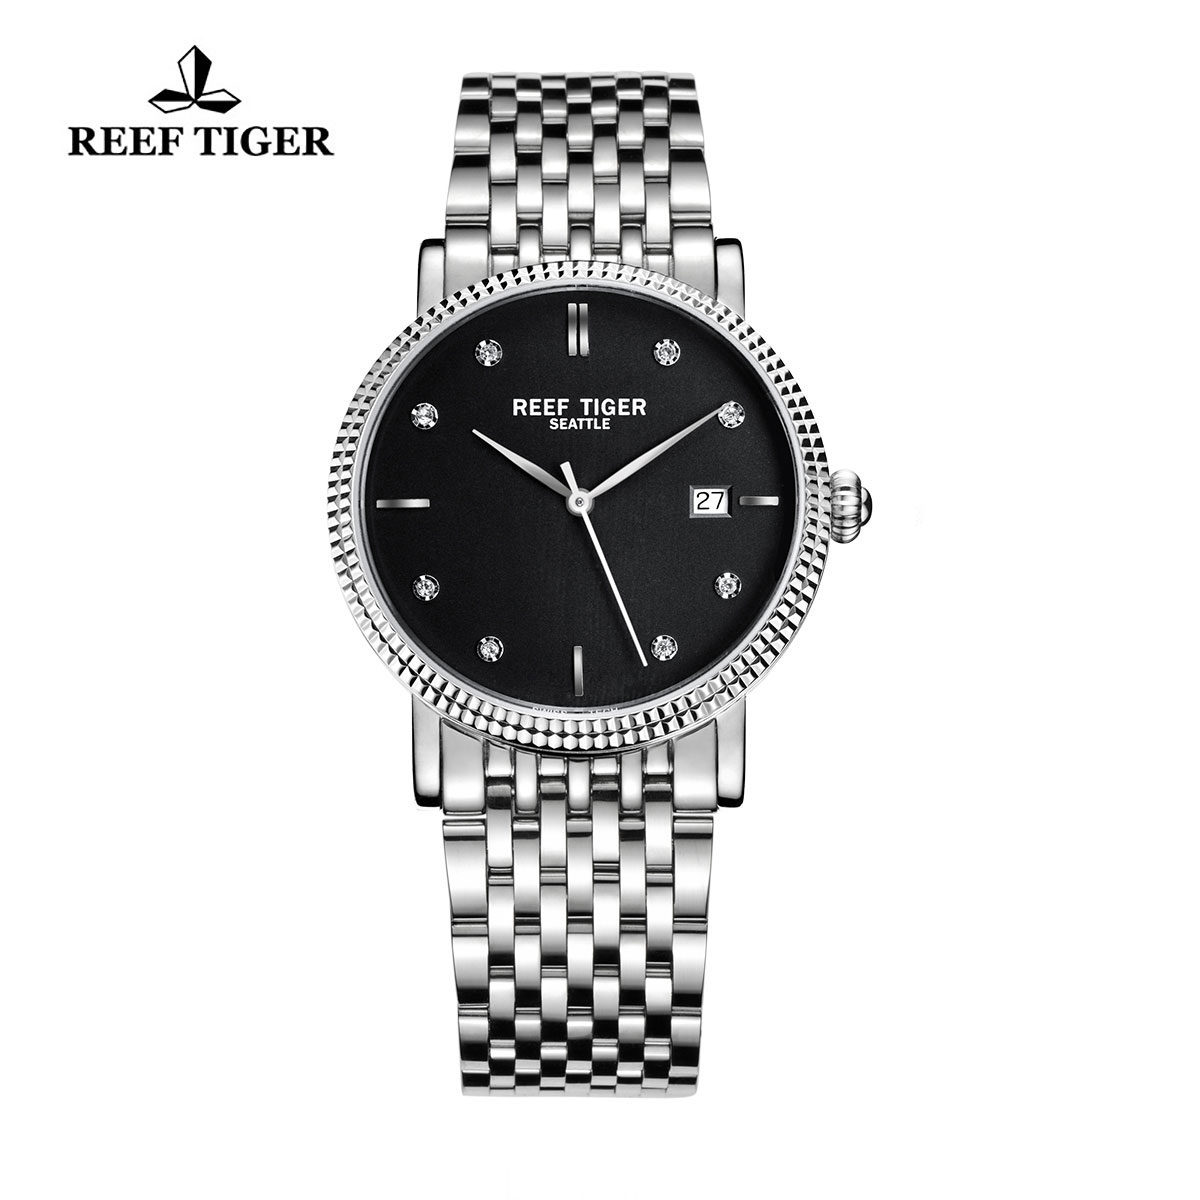 Reef Tiger Dress Watch Steel Black Dial Steel Bracelet Automatic Watch RGA163-YBYD